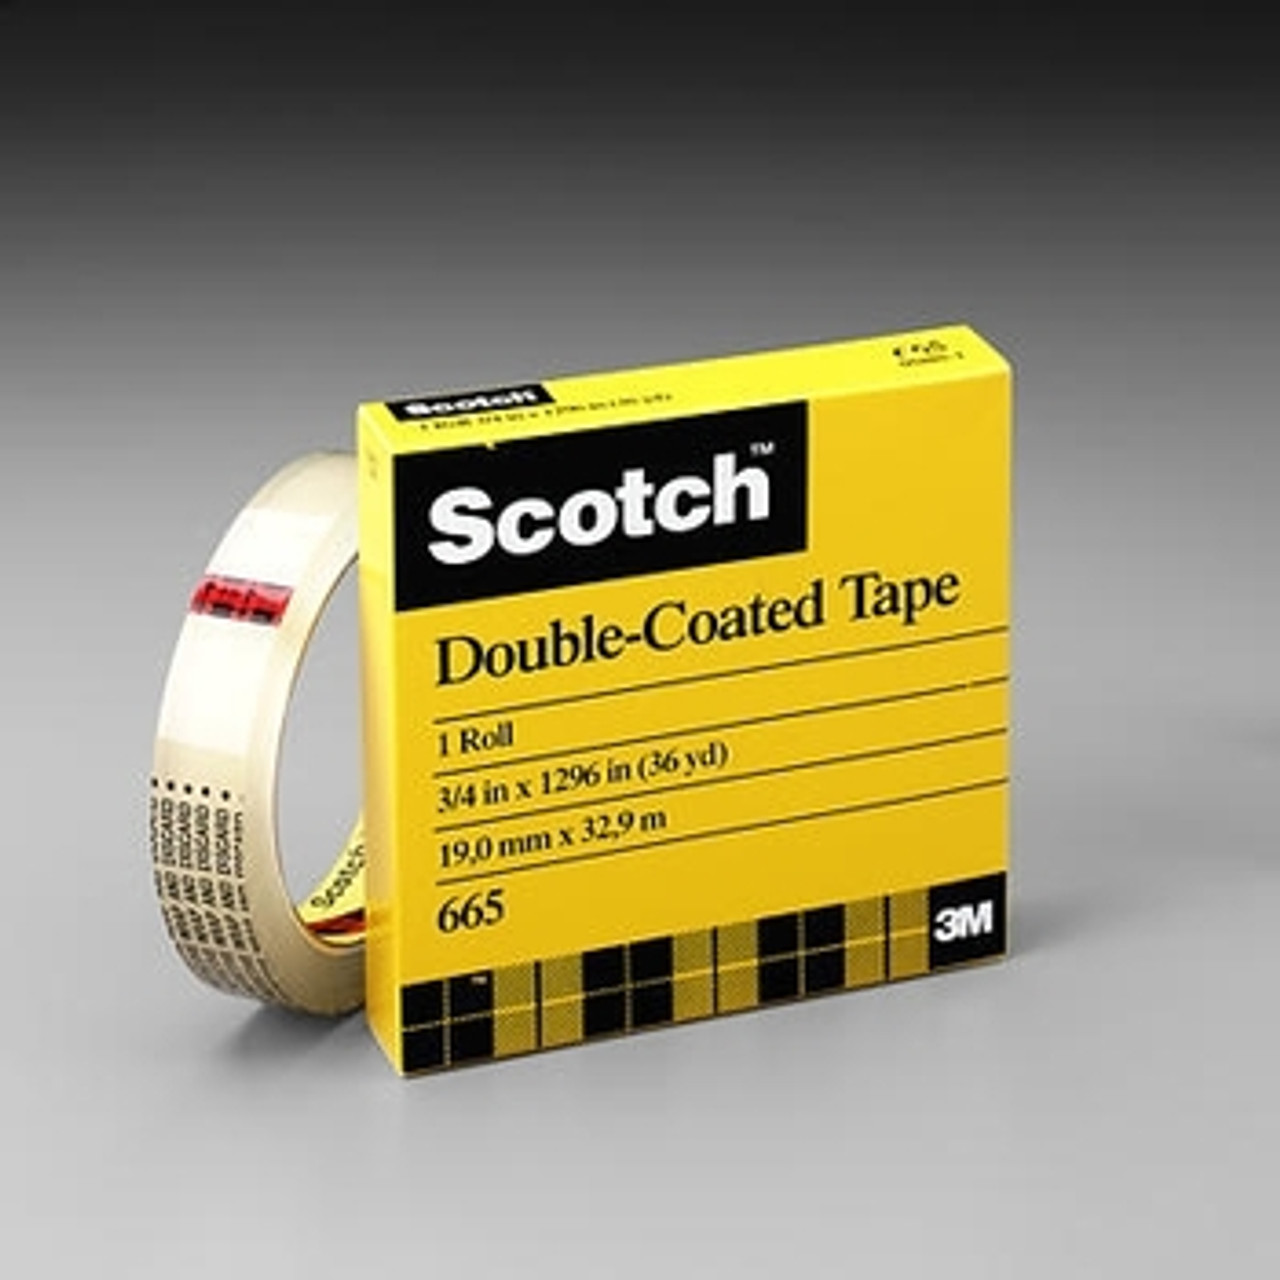 "Scotch Double Sided Tape 3M 665 1/2"" x 1296"""